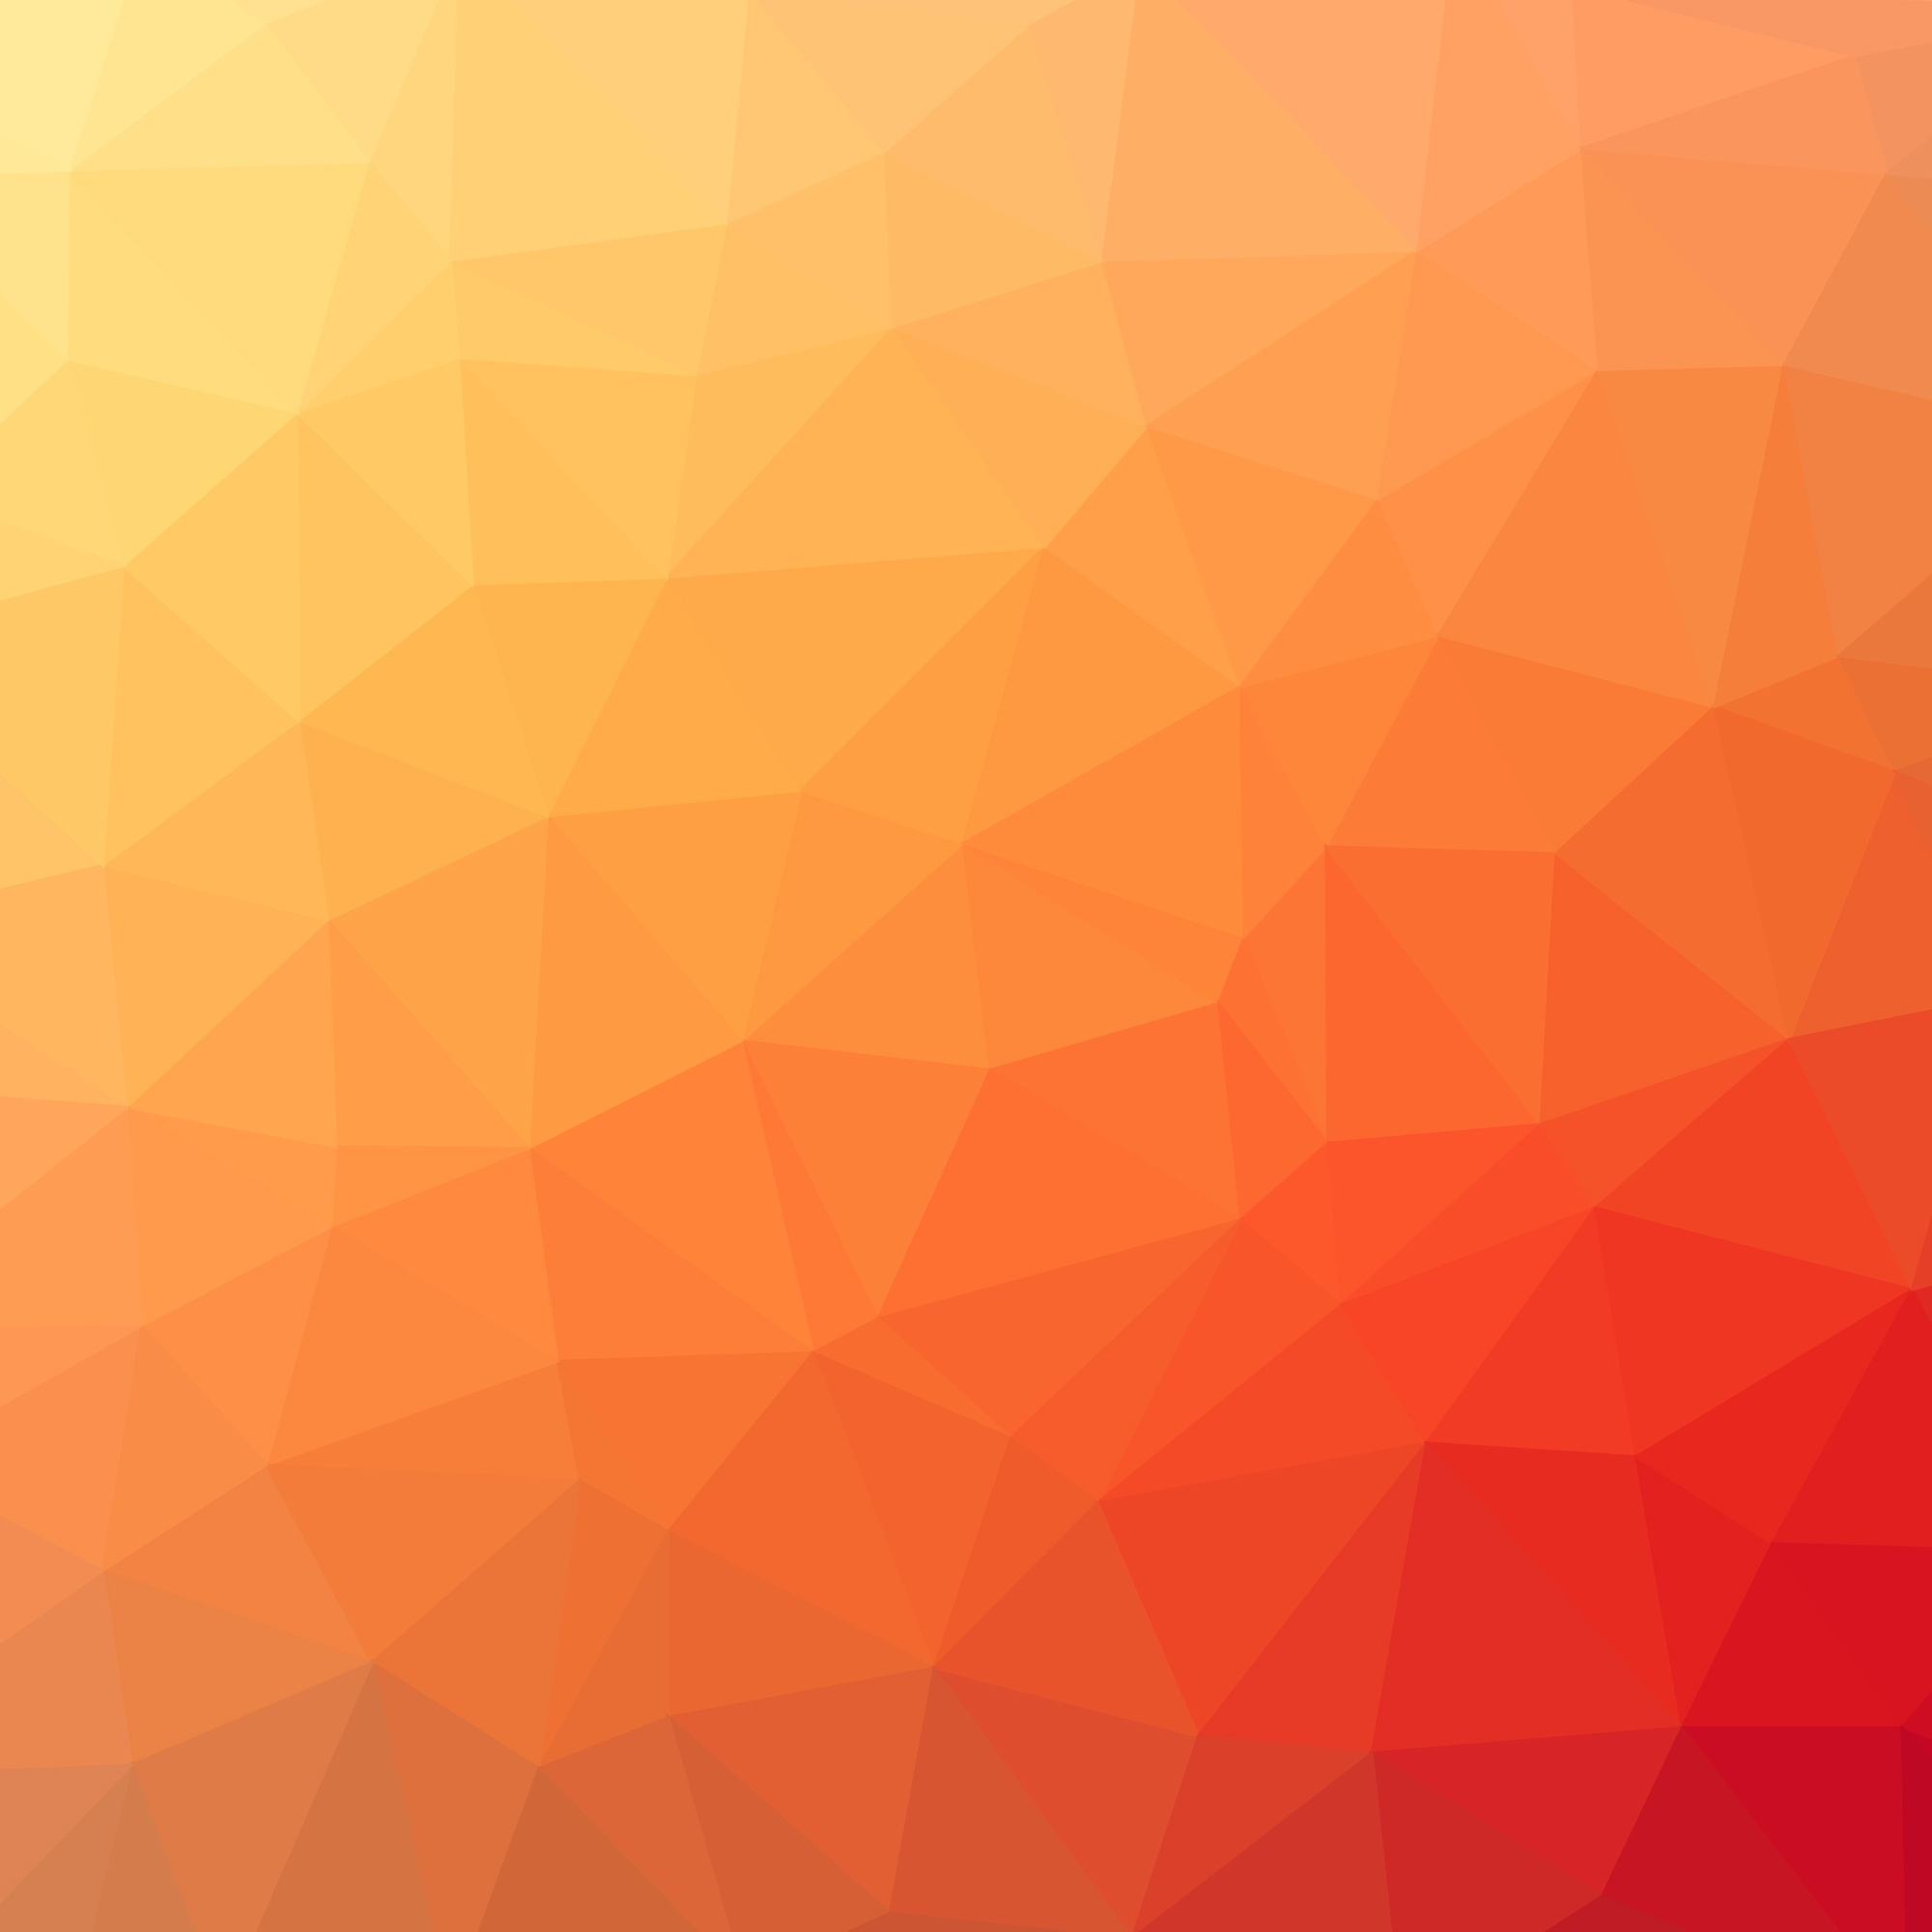 Abstract orange red polygonal background